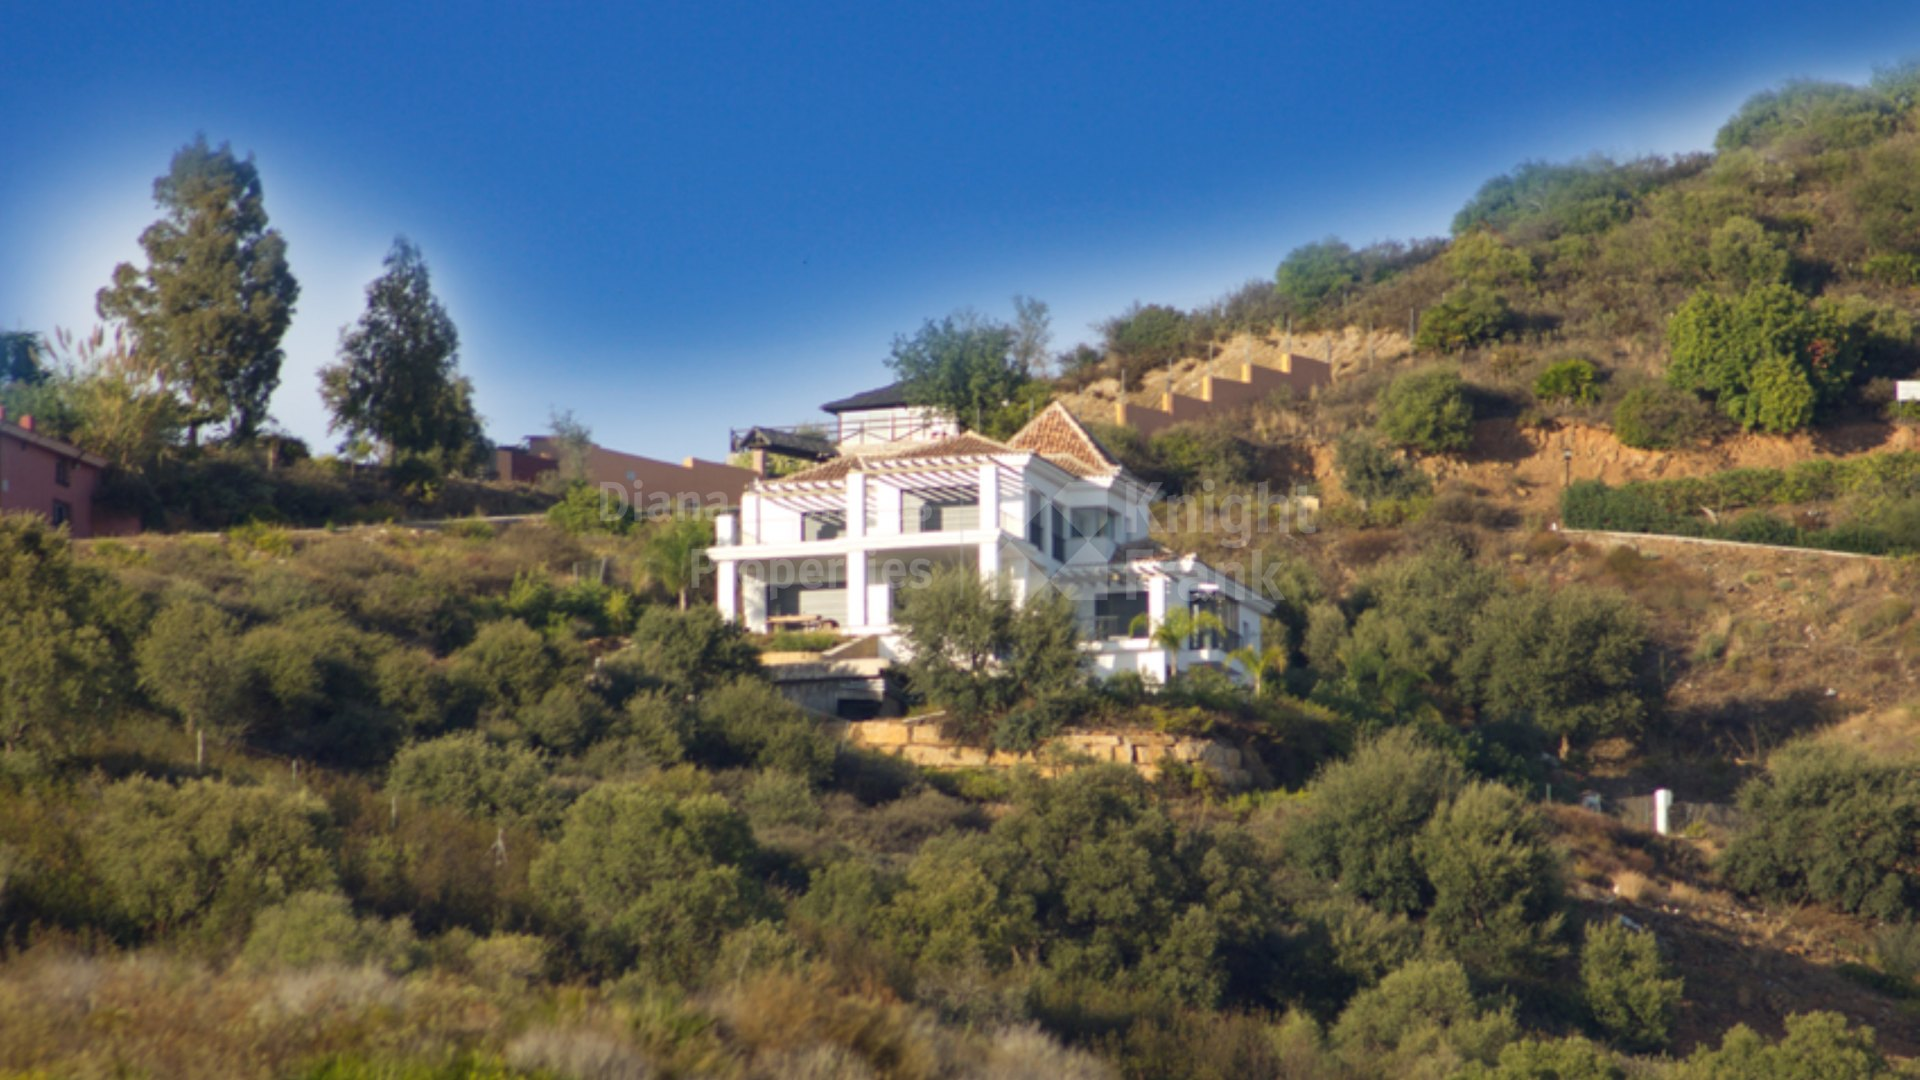 Los Altos de los Monteros, Villa with amazing panoramic views